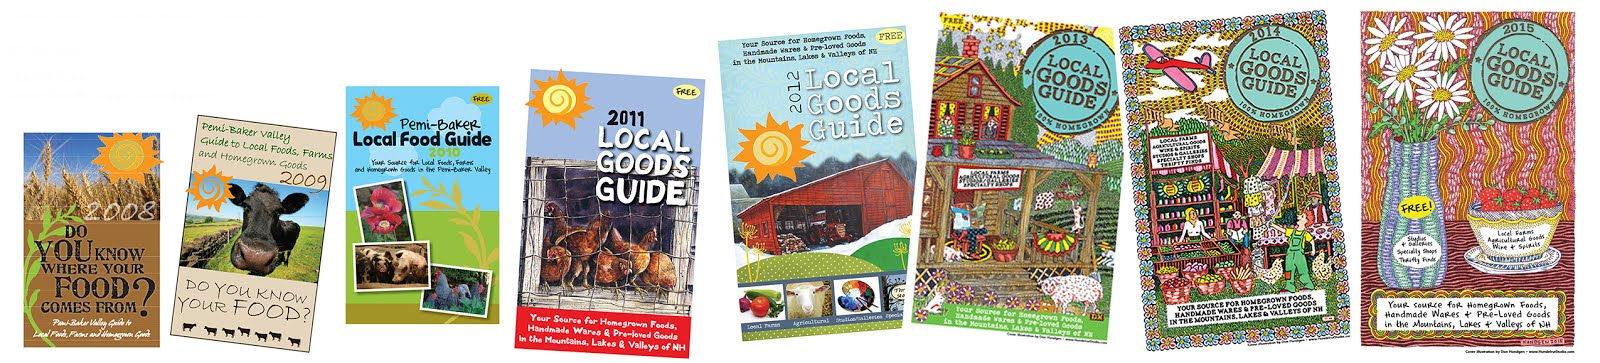 Local Goods Guides of the past!